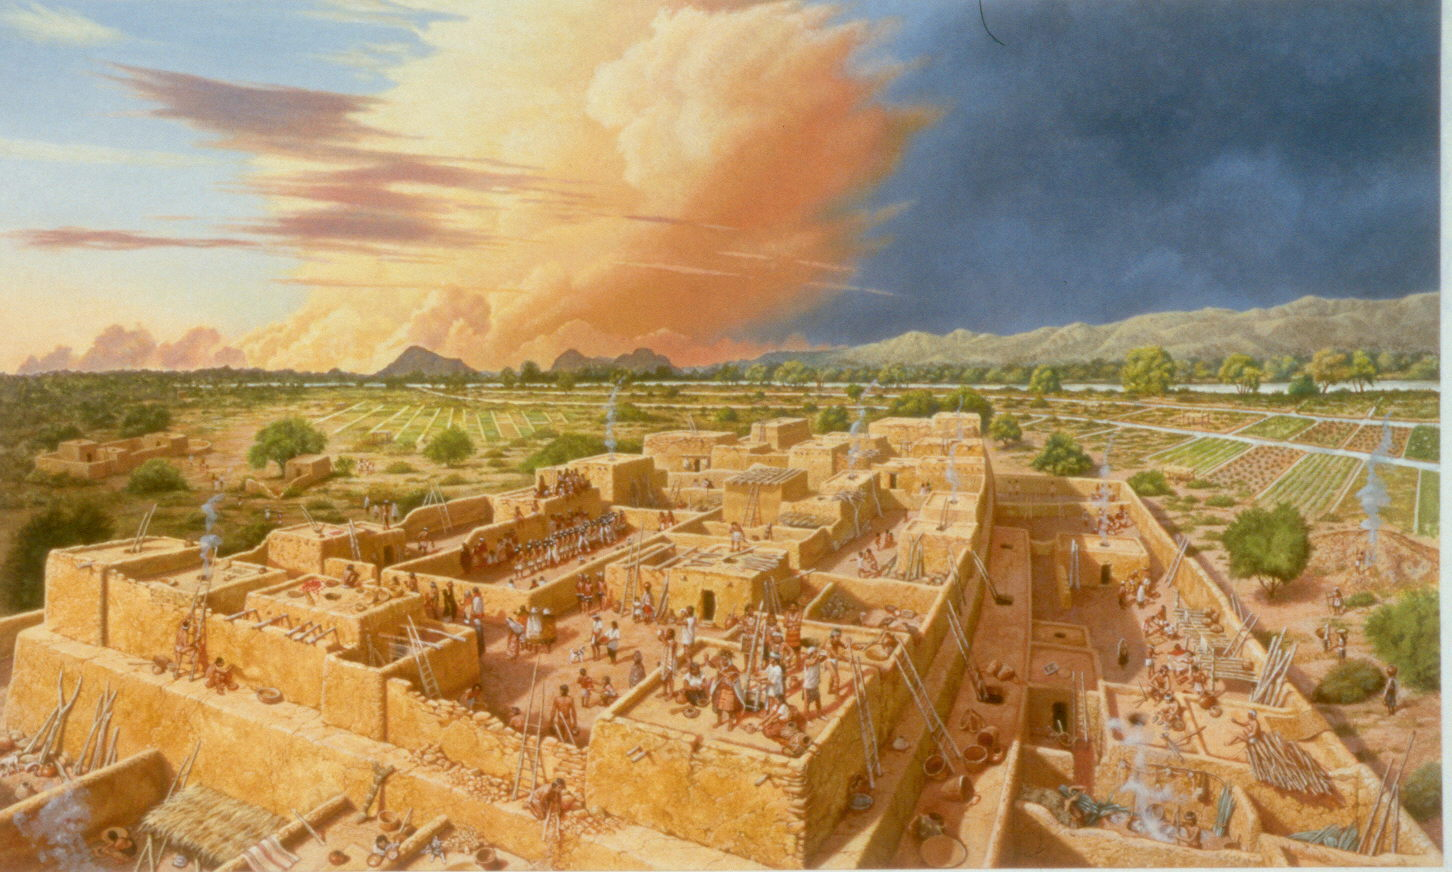 Artists illustration of Hohokam settlement